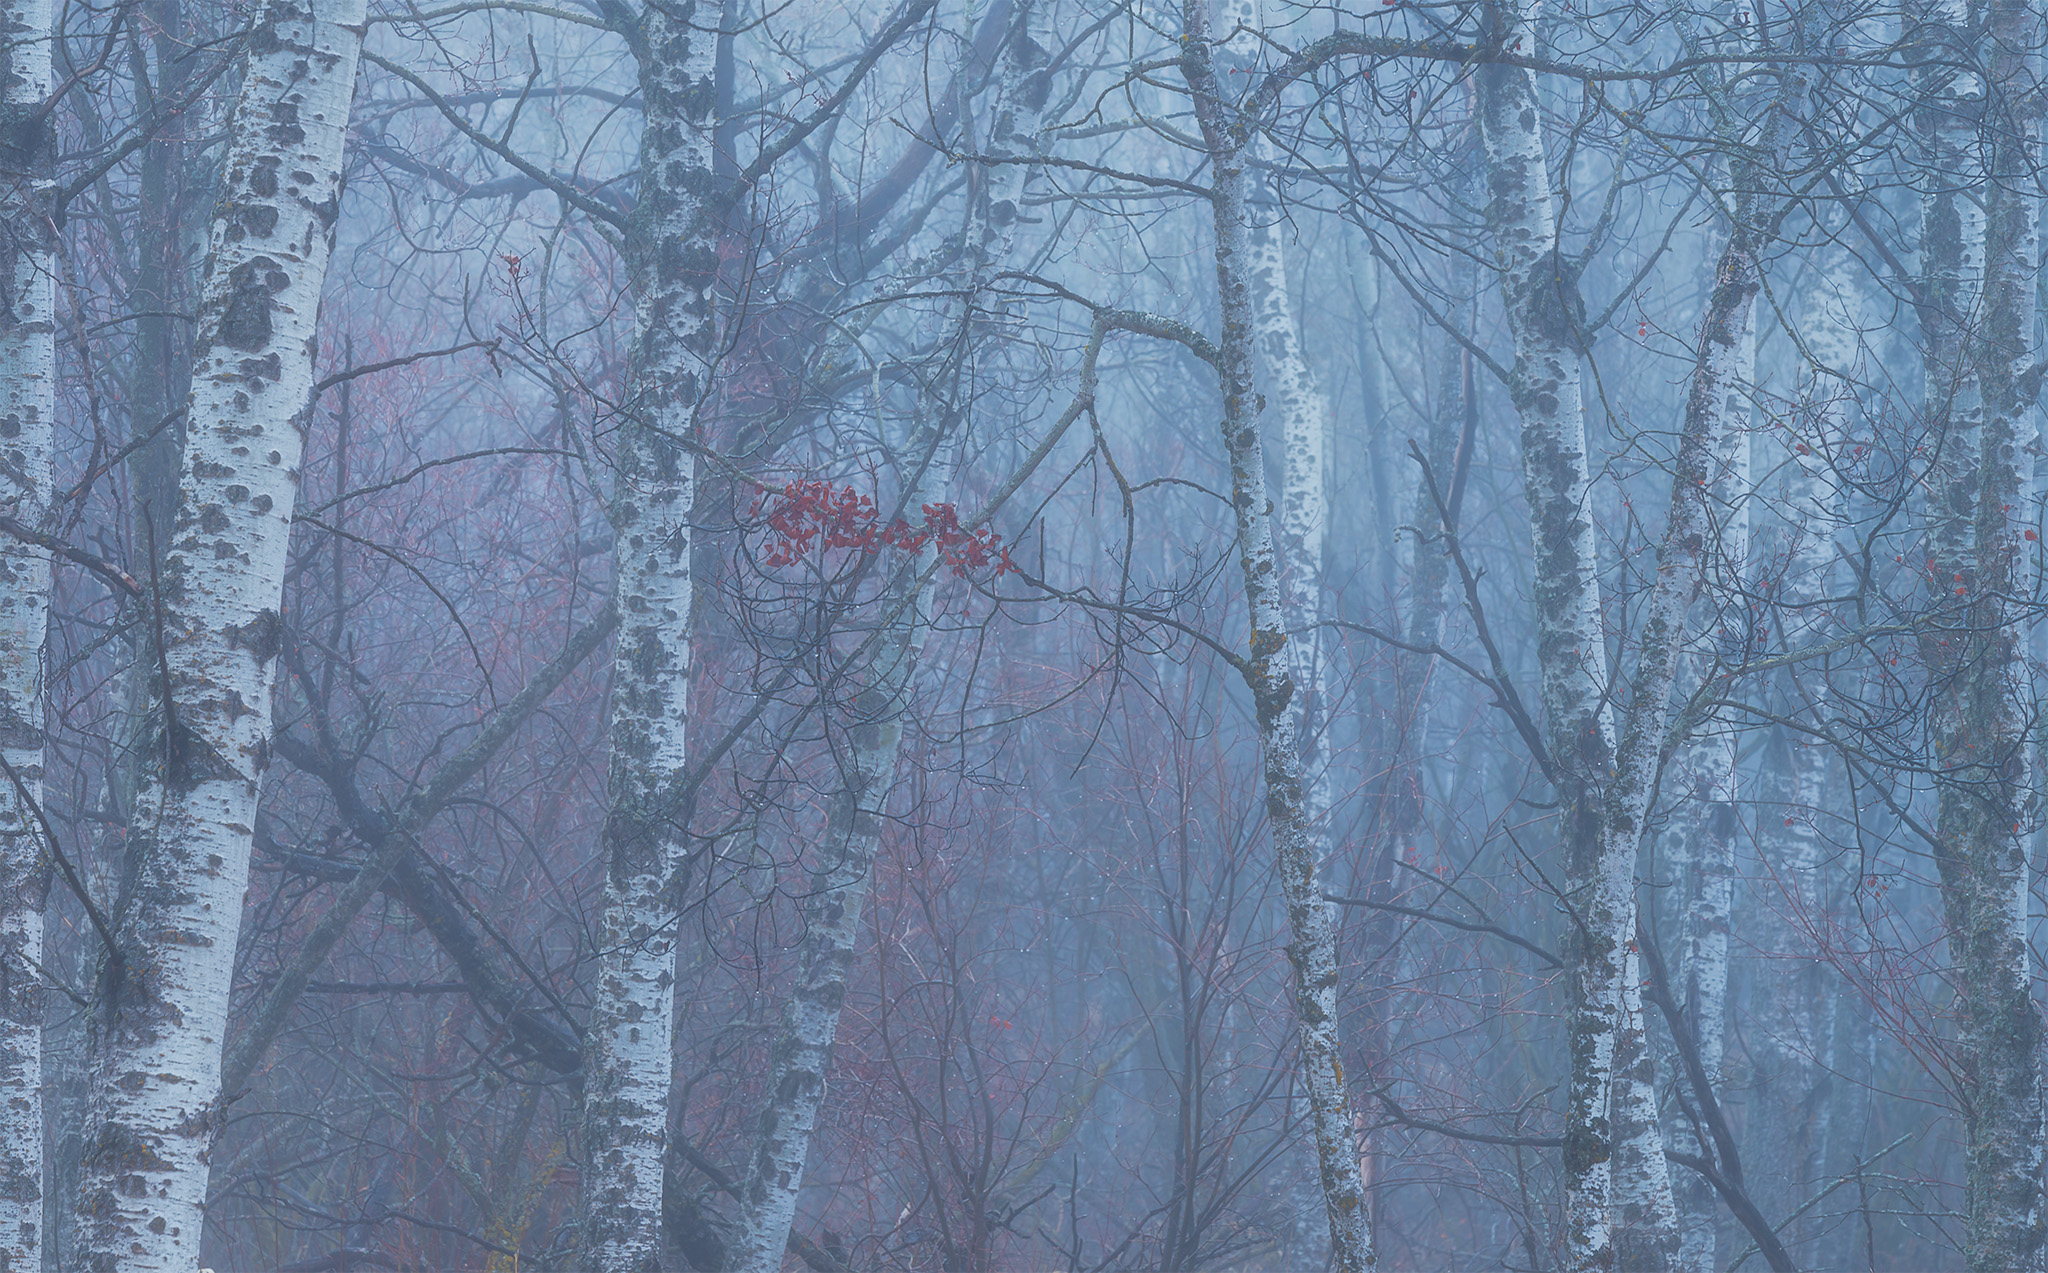 Fog in a Saskatchewan woodland. A group of red leaves is highlighted in the center.